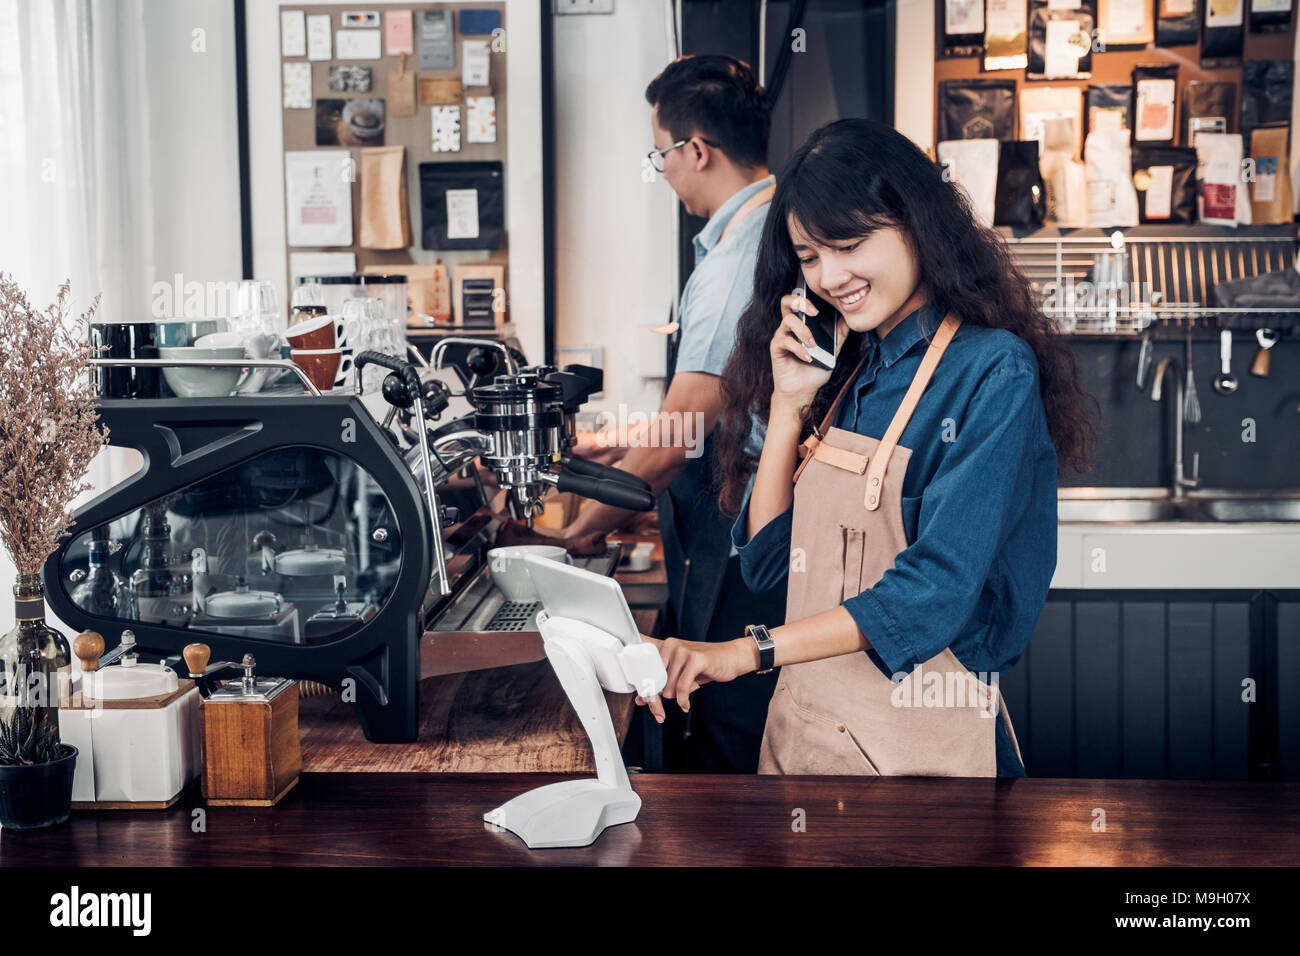 Asia Barista waiter use tablet take order from customer in coffee shop,cafe owner writing drink order at counter bar,Food and drink business concept,S - Stock Image